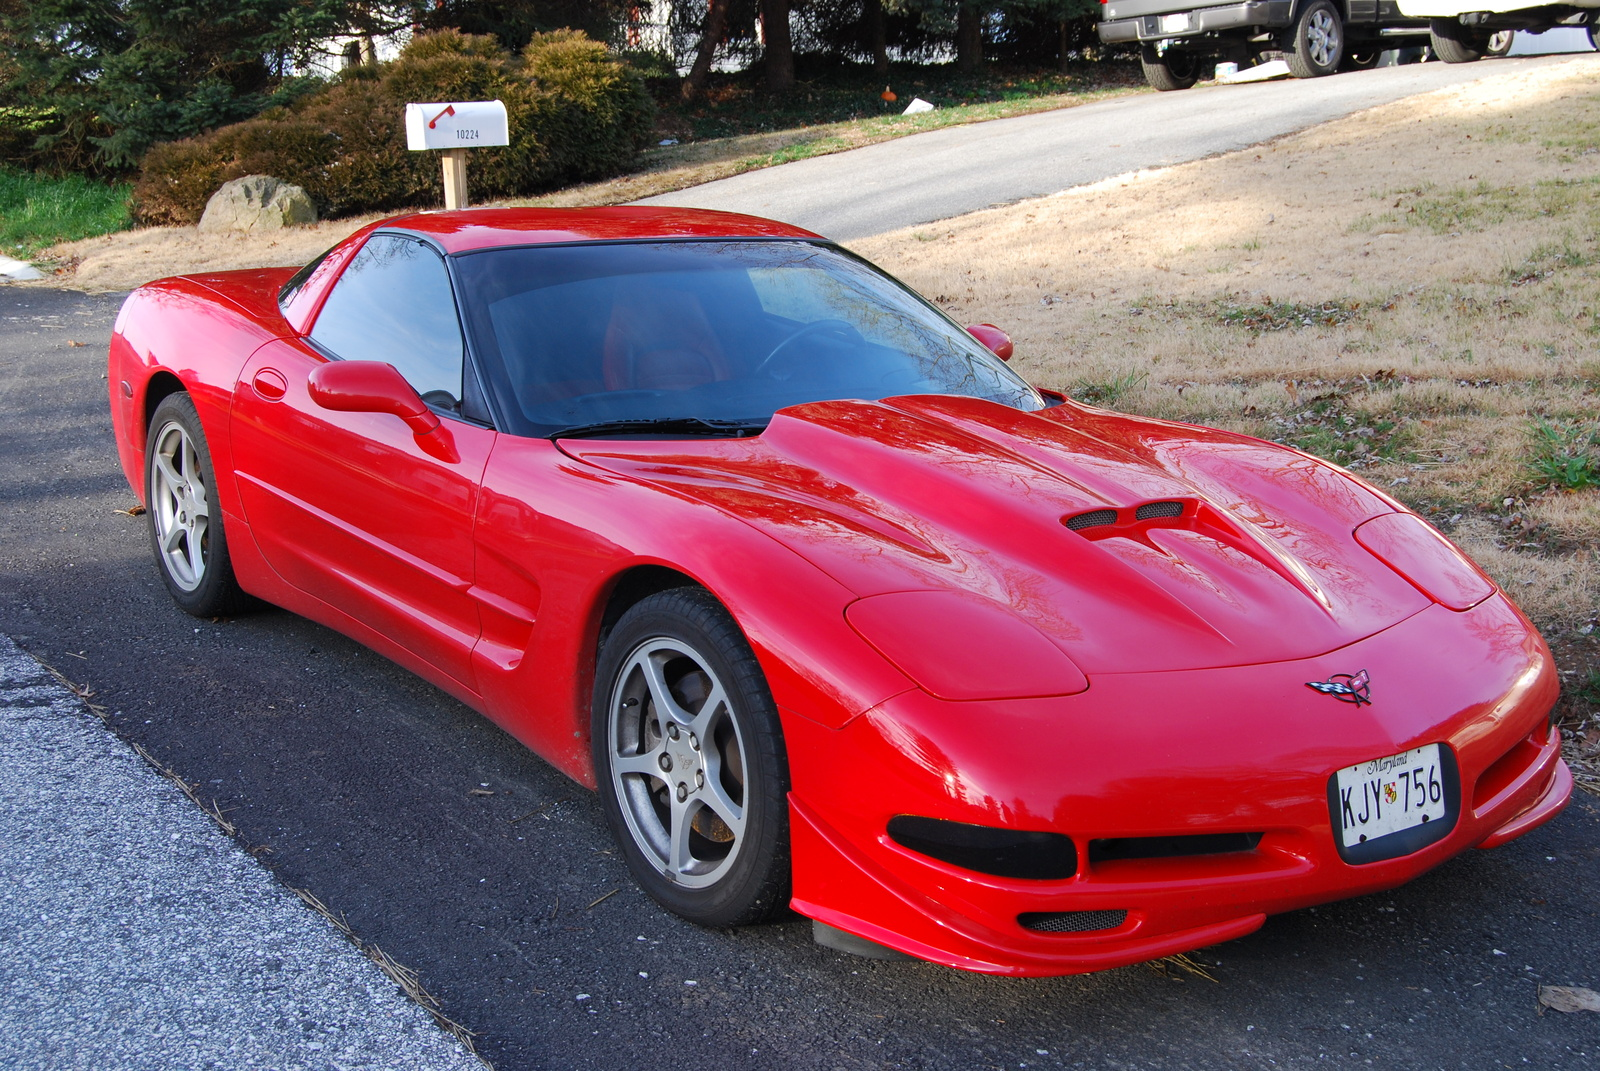 2000 Chevrolet Corvette Coupe picture, exterior